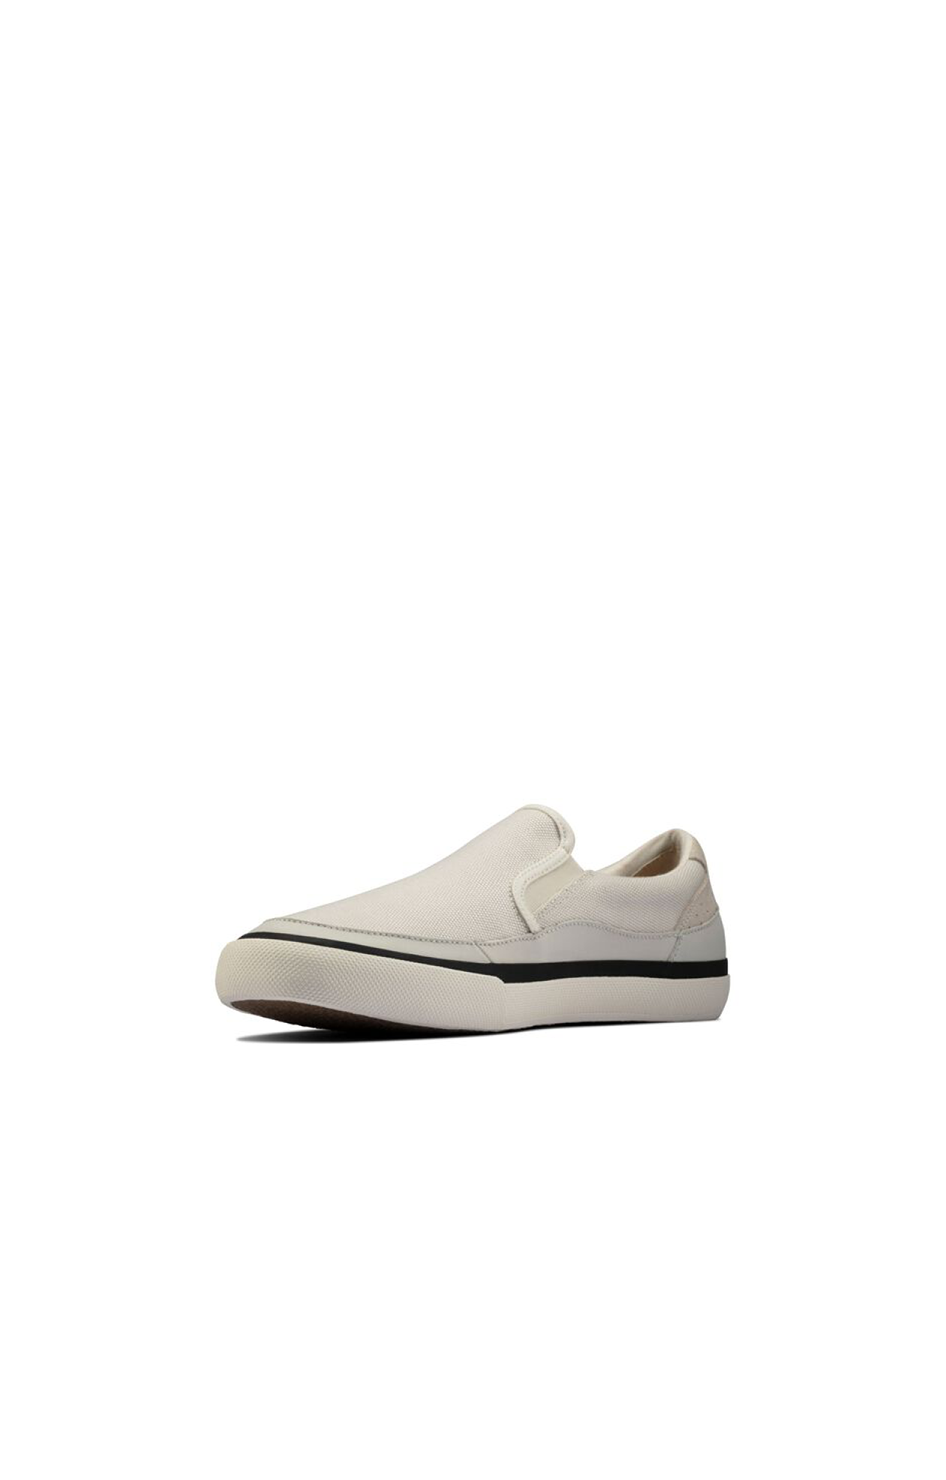 Aceley Step Sneaker - White Canvas